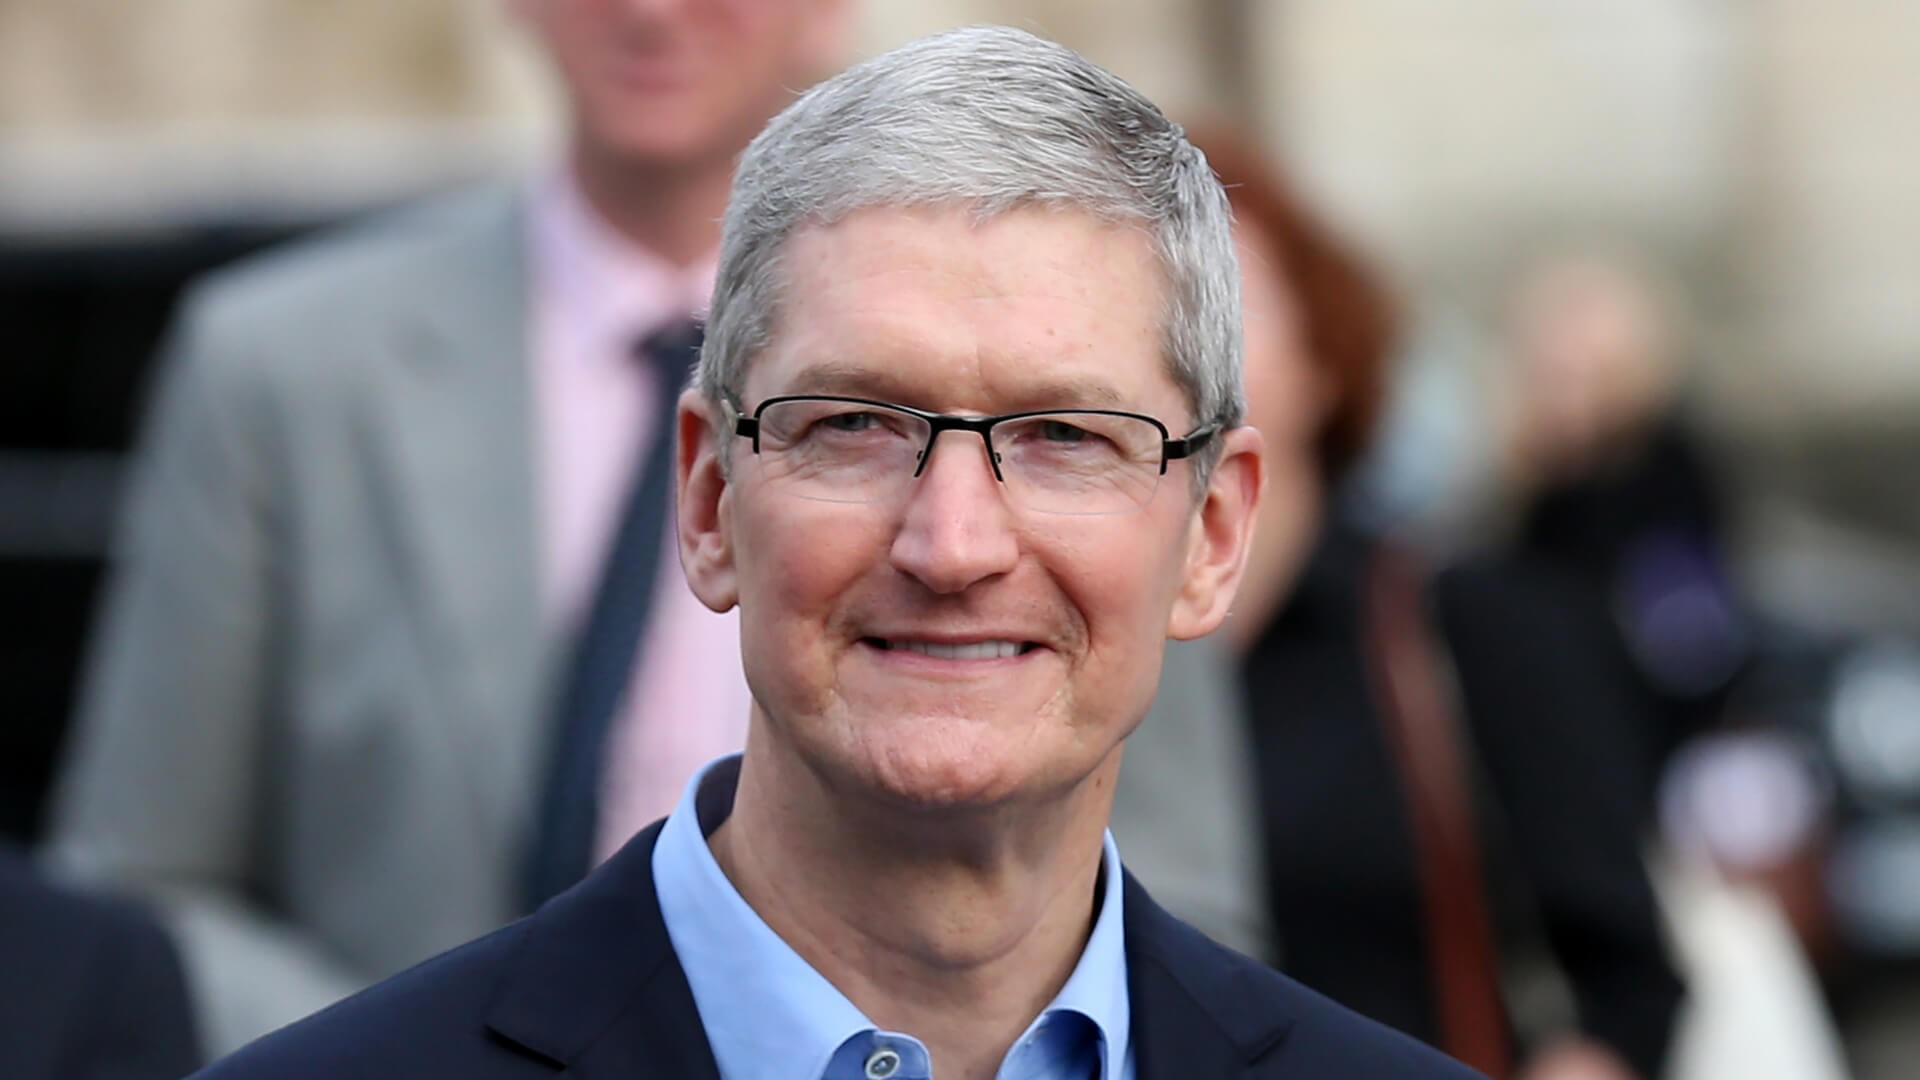 DUBLIN, IRELAND - 11/11/2015 Apple CEO, Tim Cook, arrives for a Q&A with members of the Trinity College Dublin Philosophical Society and receive the Gold Medal of Honorary Patronage.